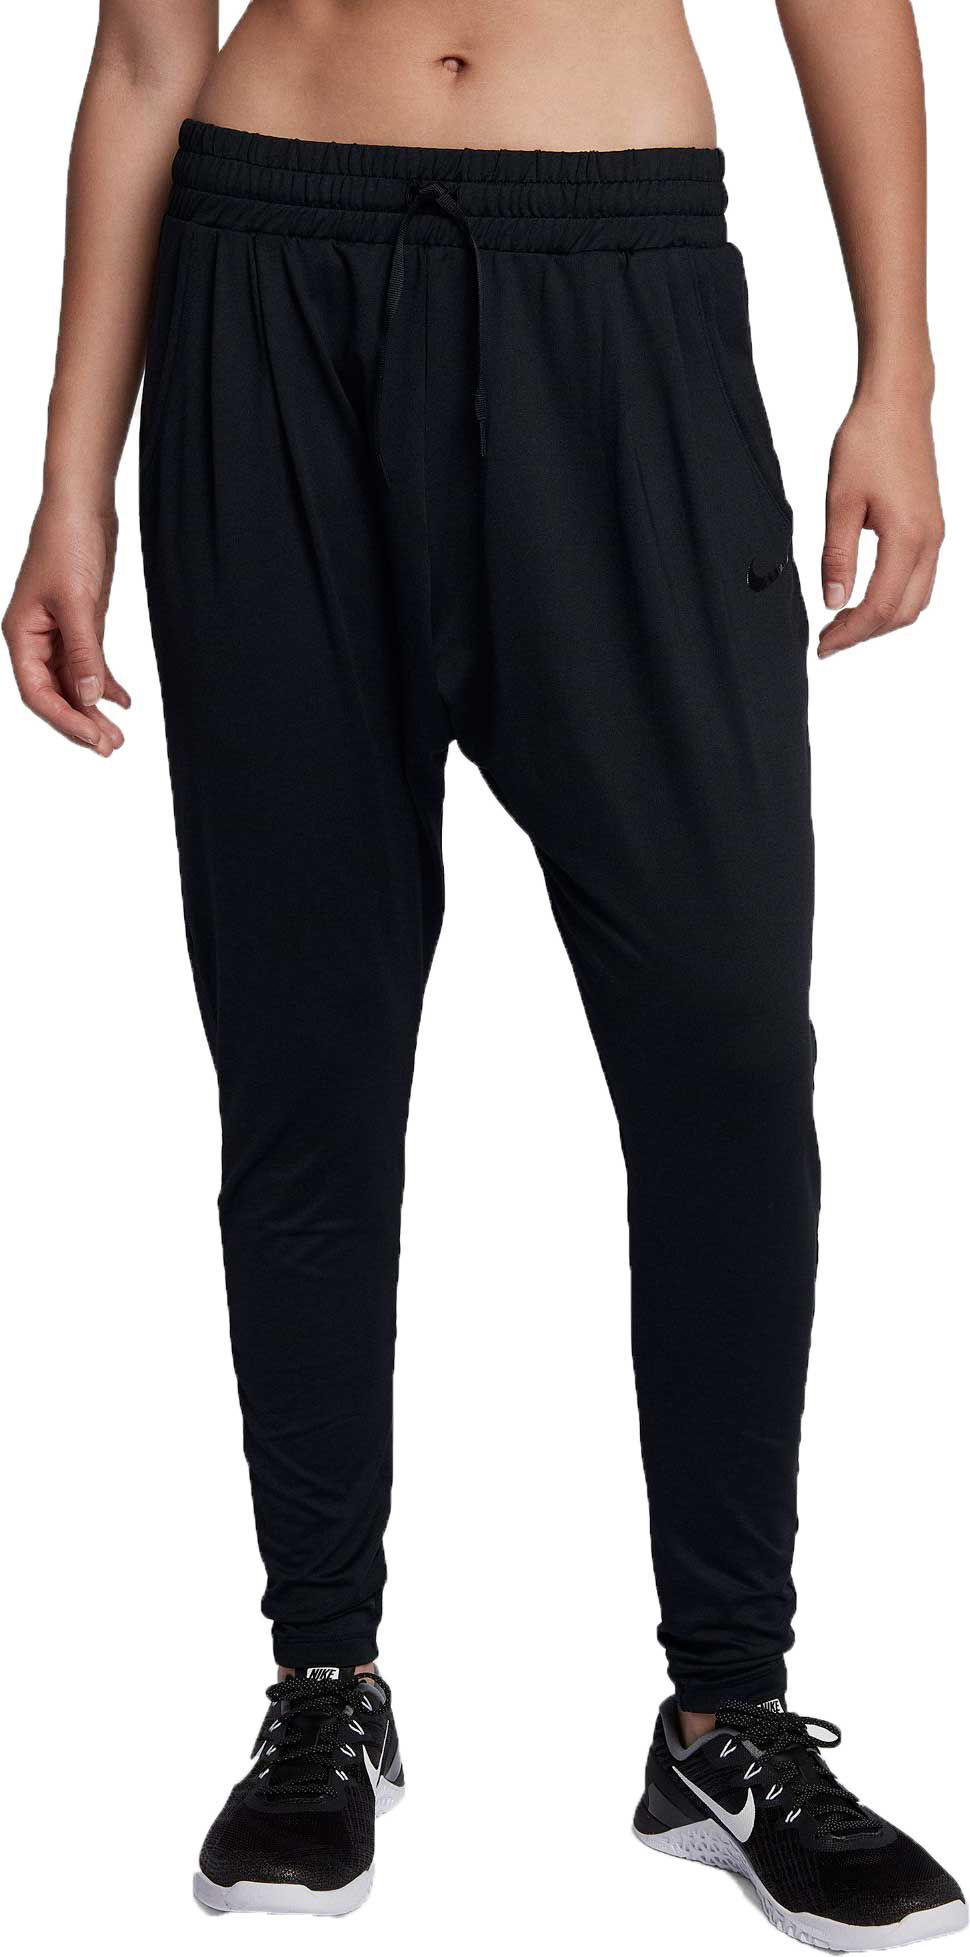 W NK FLOW VCTRY PANT - TROUSERS - Casual trousers Nike Footlocker Cheap Price Hot Sale Amazing Price Clearance Deals T5jUmv49